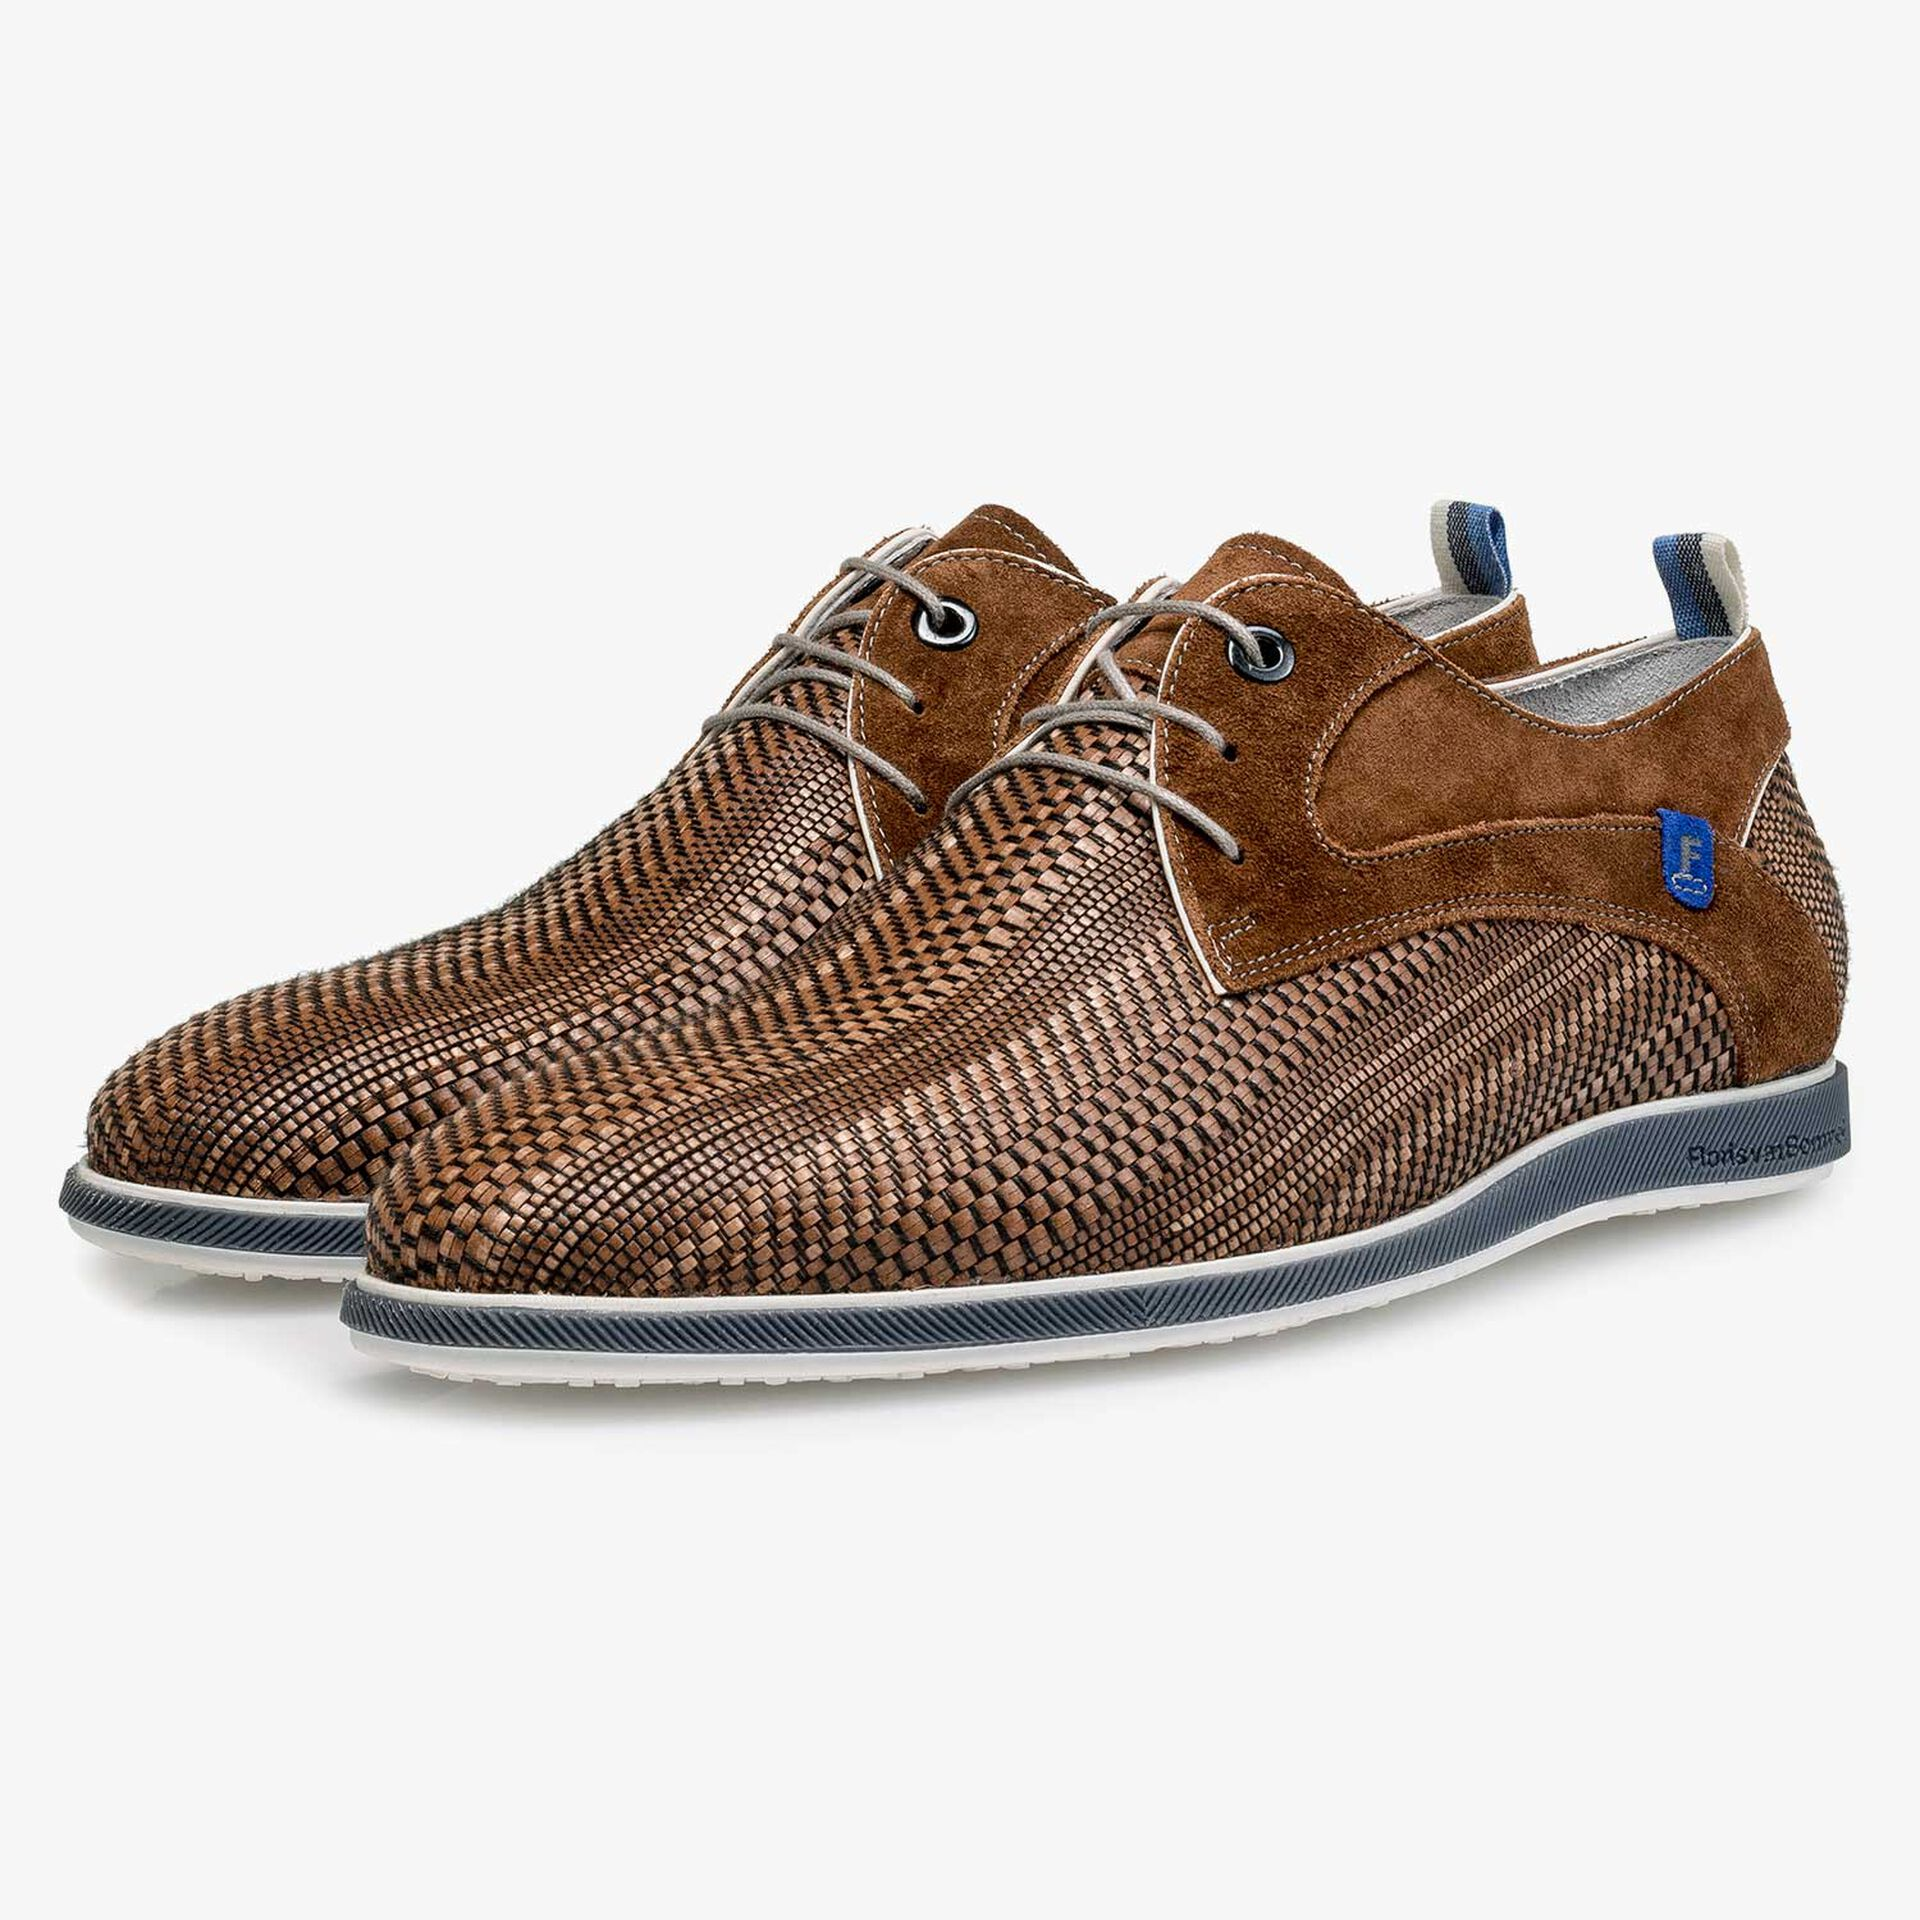 Cognac-coloured braided leather lace shoe